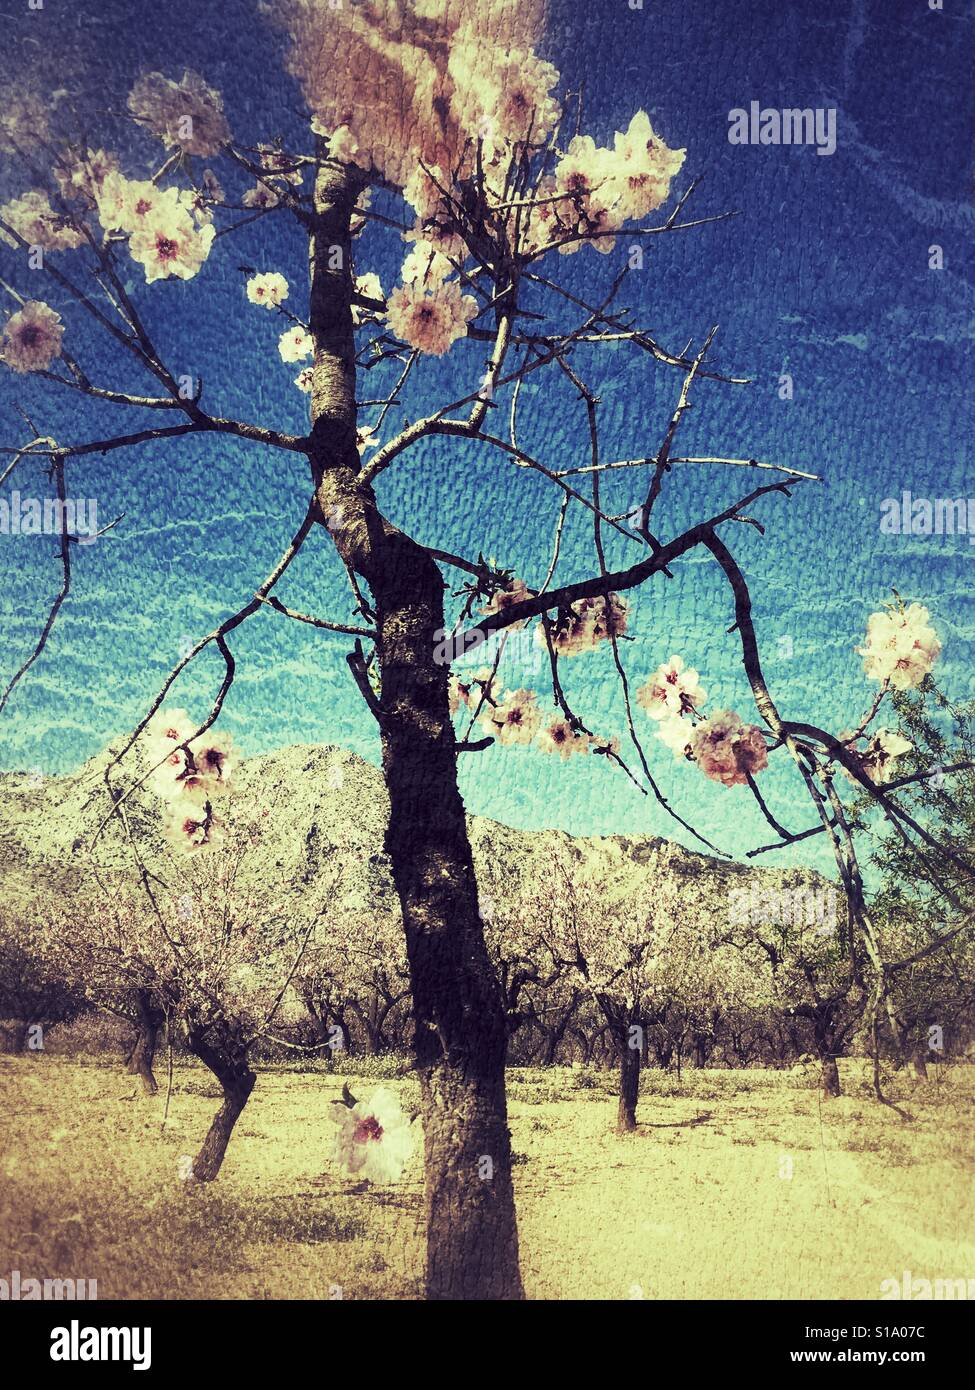 Almond blossom in the Jalon Valley, the first sign of Spring on the Costa Blanca, Spain - Stock Image